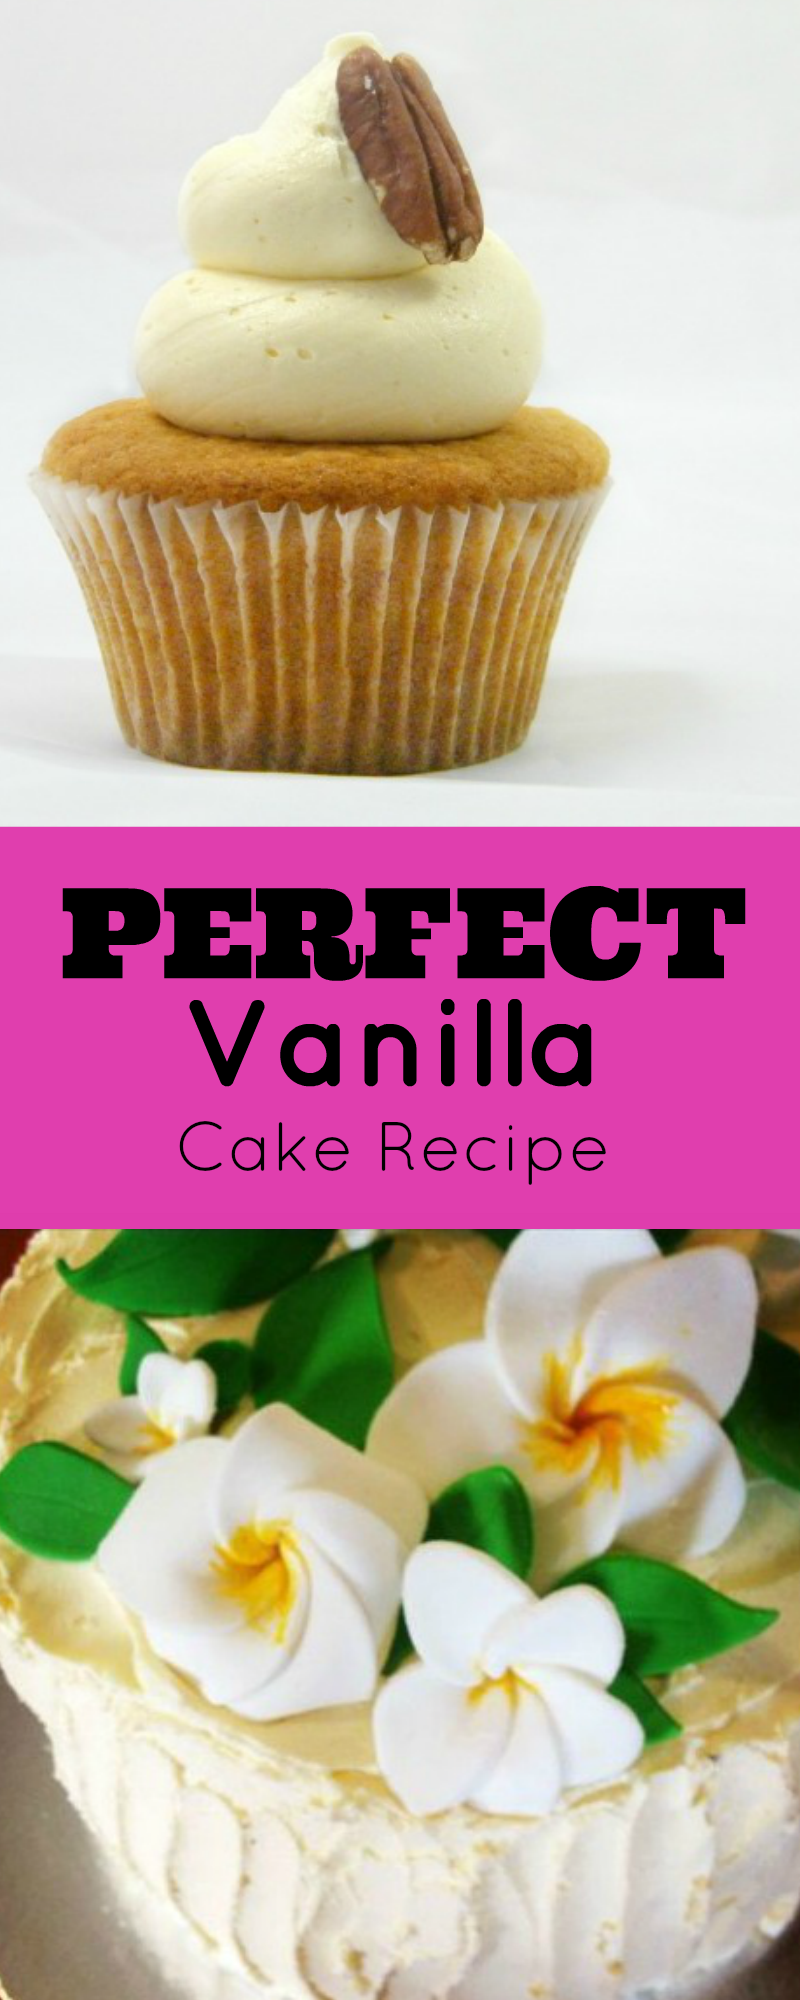 Perfect Vanilla Cake Recipe. For cake decorators, no fail vanilla cake recipe, that is quick and easy, inexpensive, which tastes amazing and customers love.   http://angelfoods.net/vanilla-cake-recipe-for-a-cake-business/